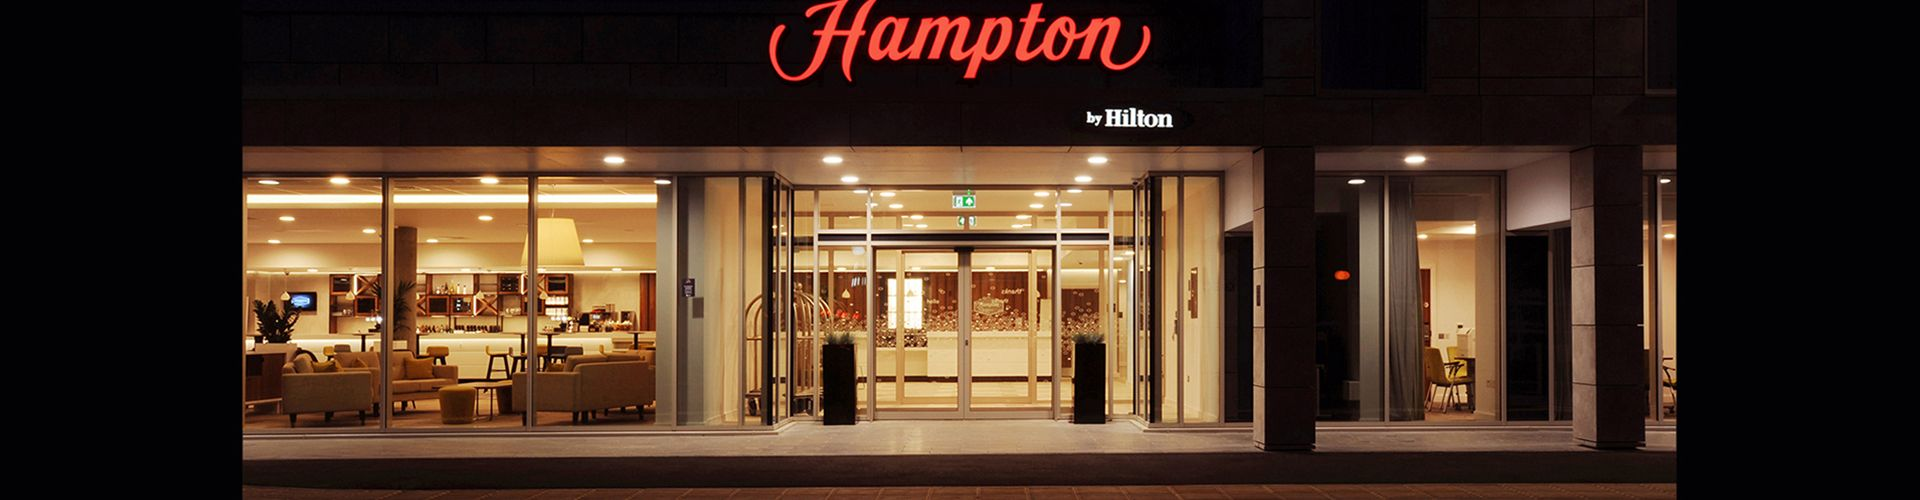 31.07.17_Hampton by Hilton lands at Urban&Civic's Stansted airport scheme.jpg